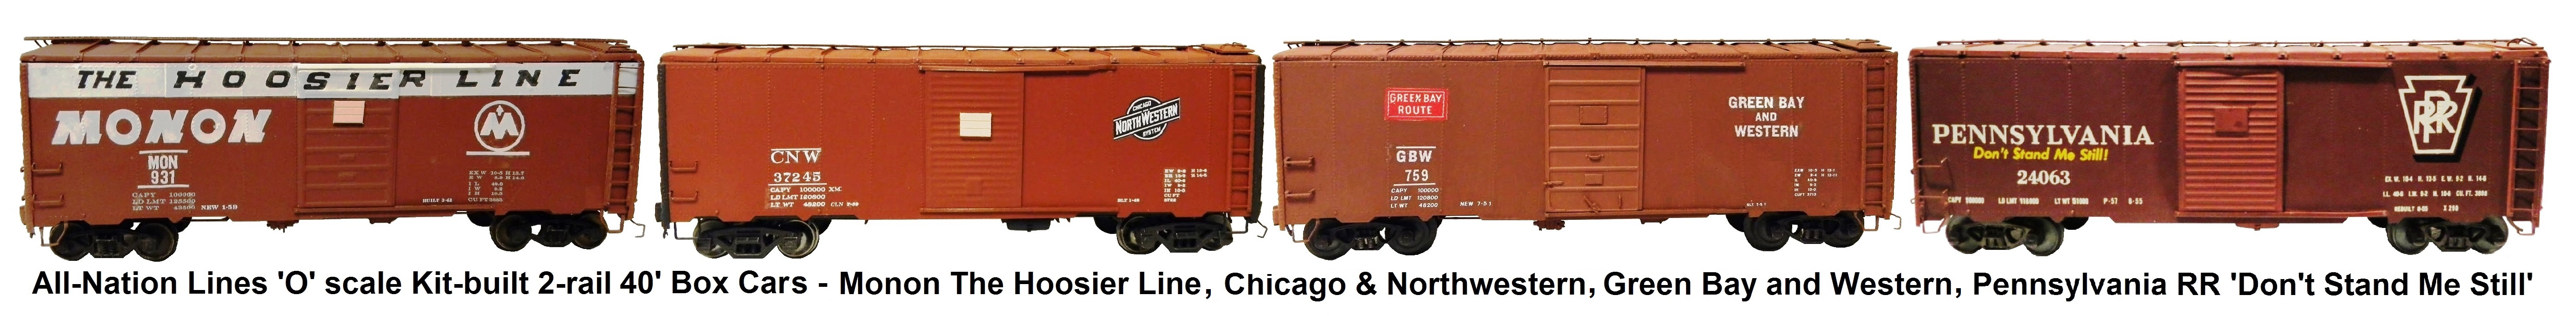 All-Nation 'O' scale 2-rail Kit-built 40' Steel Box Cars - Monon 'The Hoosier Line', Chicago & Northwestern PS-1, Green Bay and Western PS-1, and Pennsylvania RR PS-1